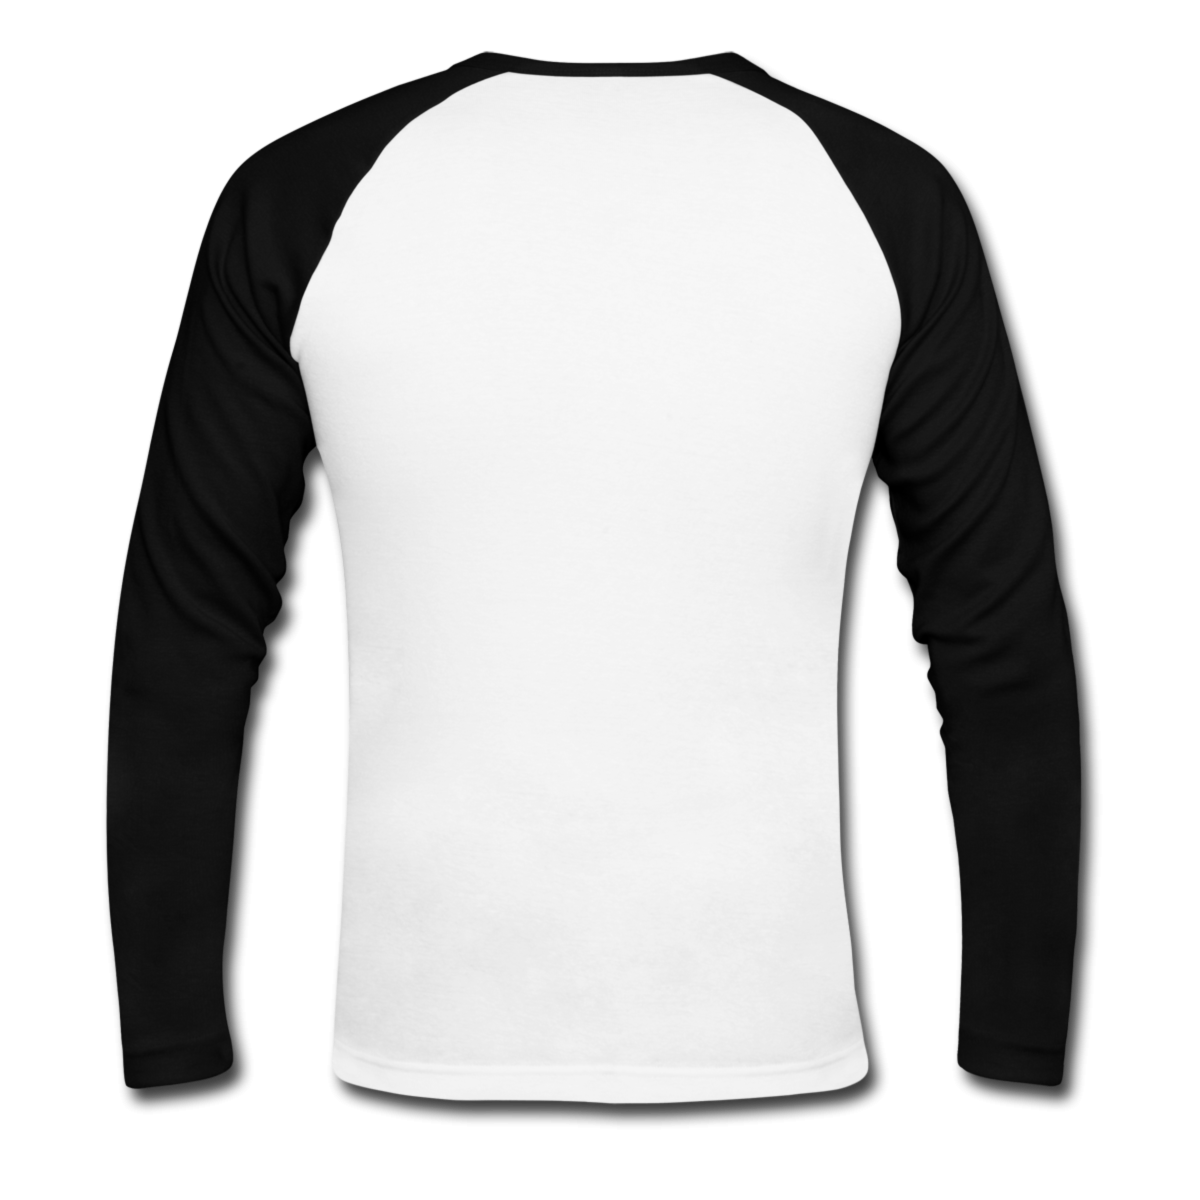 Blank t shirt back clipart best for Blank baseball jersey t shirts